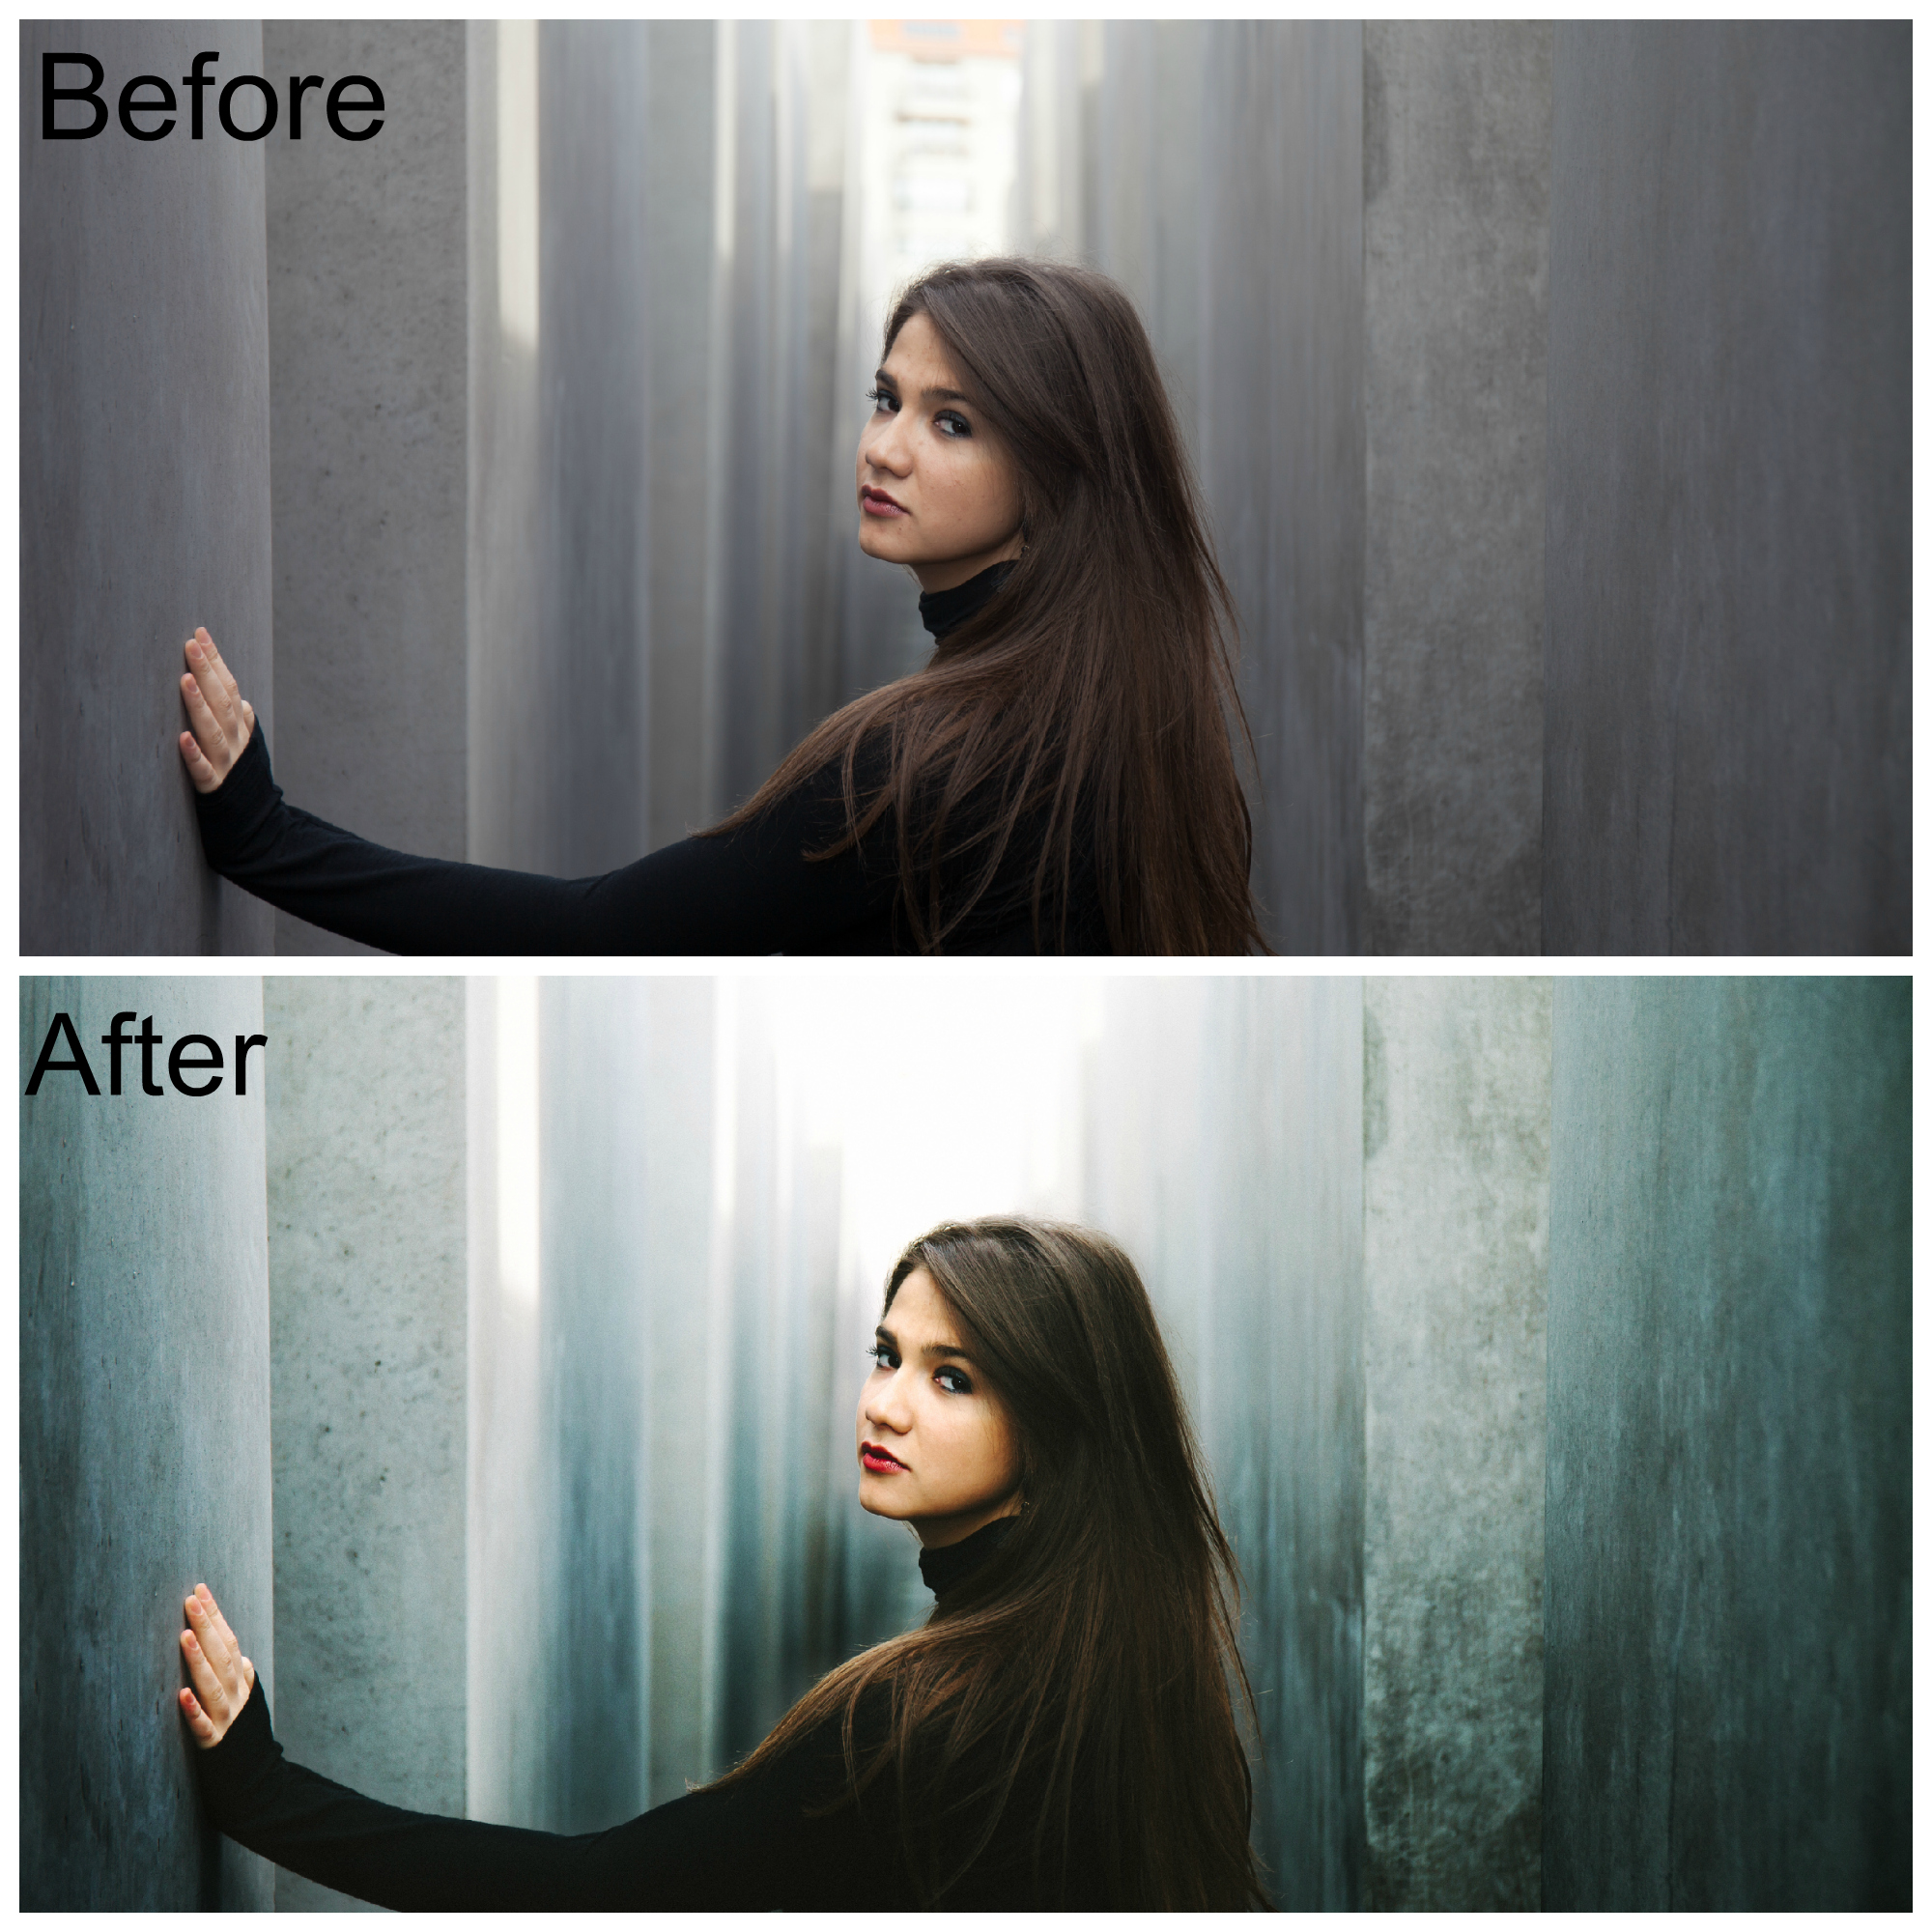 retouch and enhance any photo using Photoshop and Lightroom